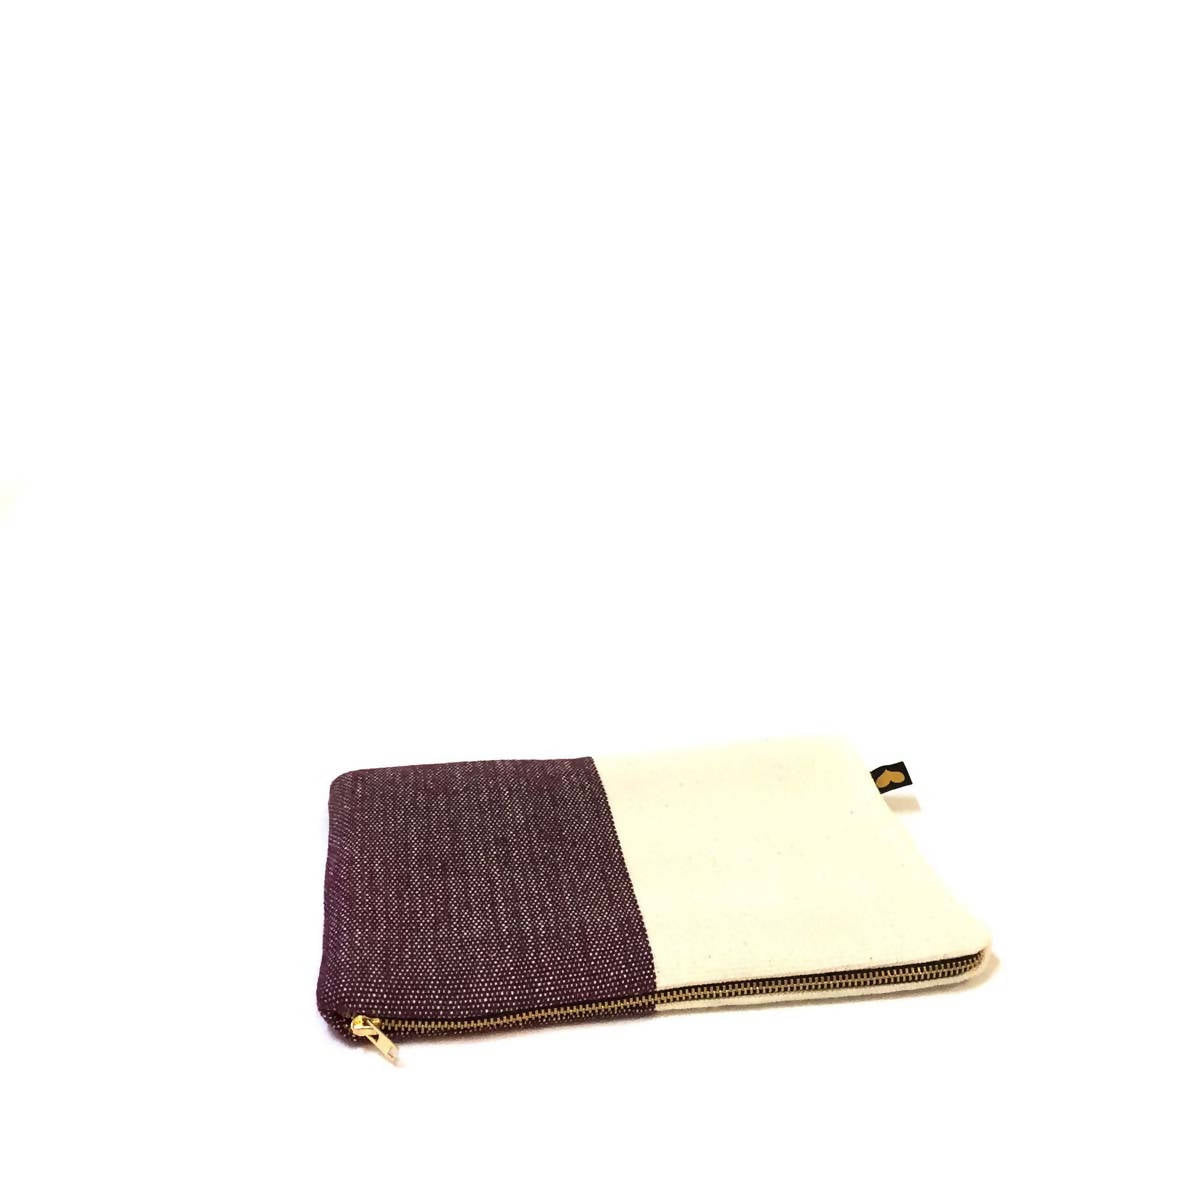 Image of   Clutch, aubergine/natur